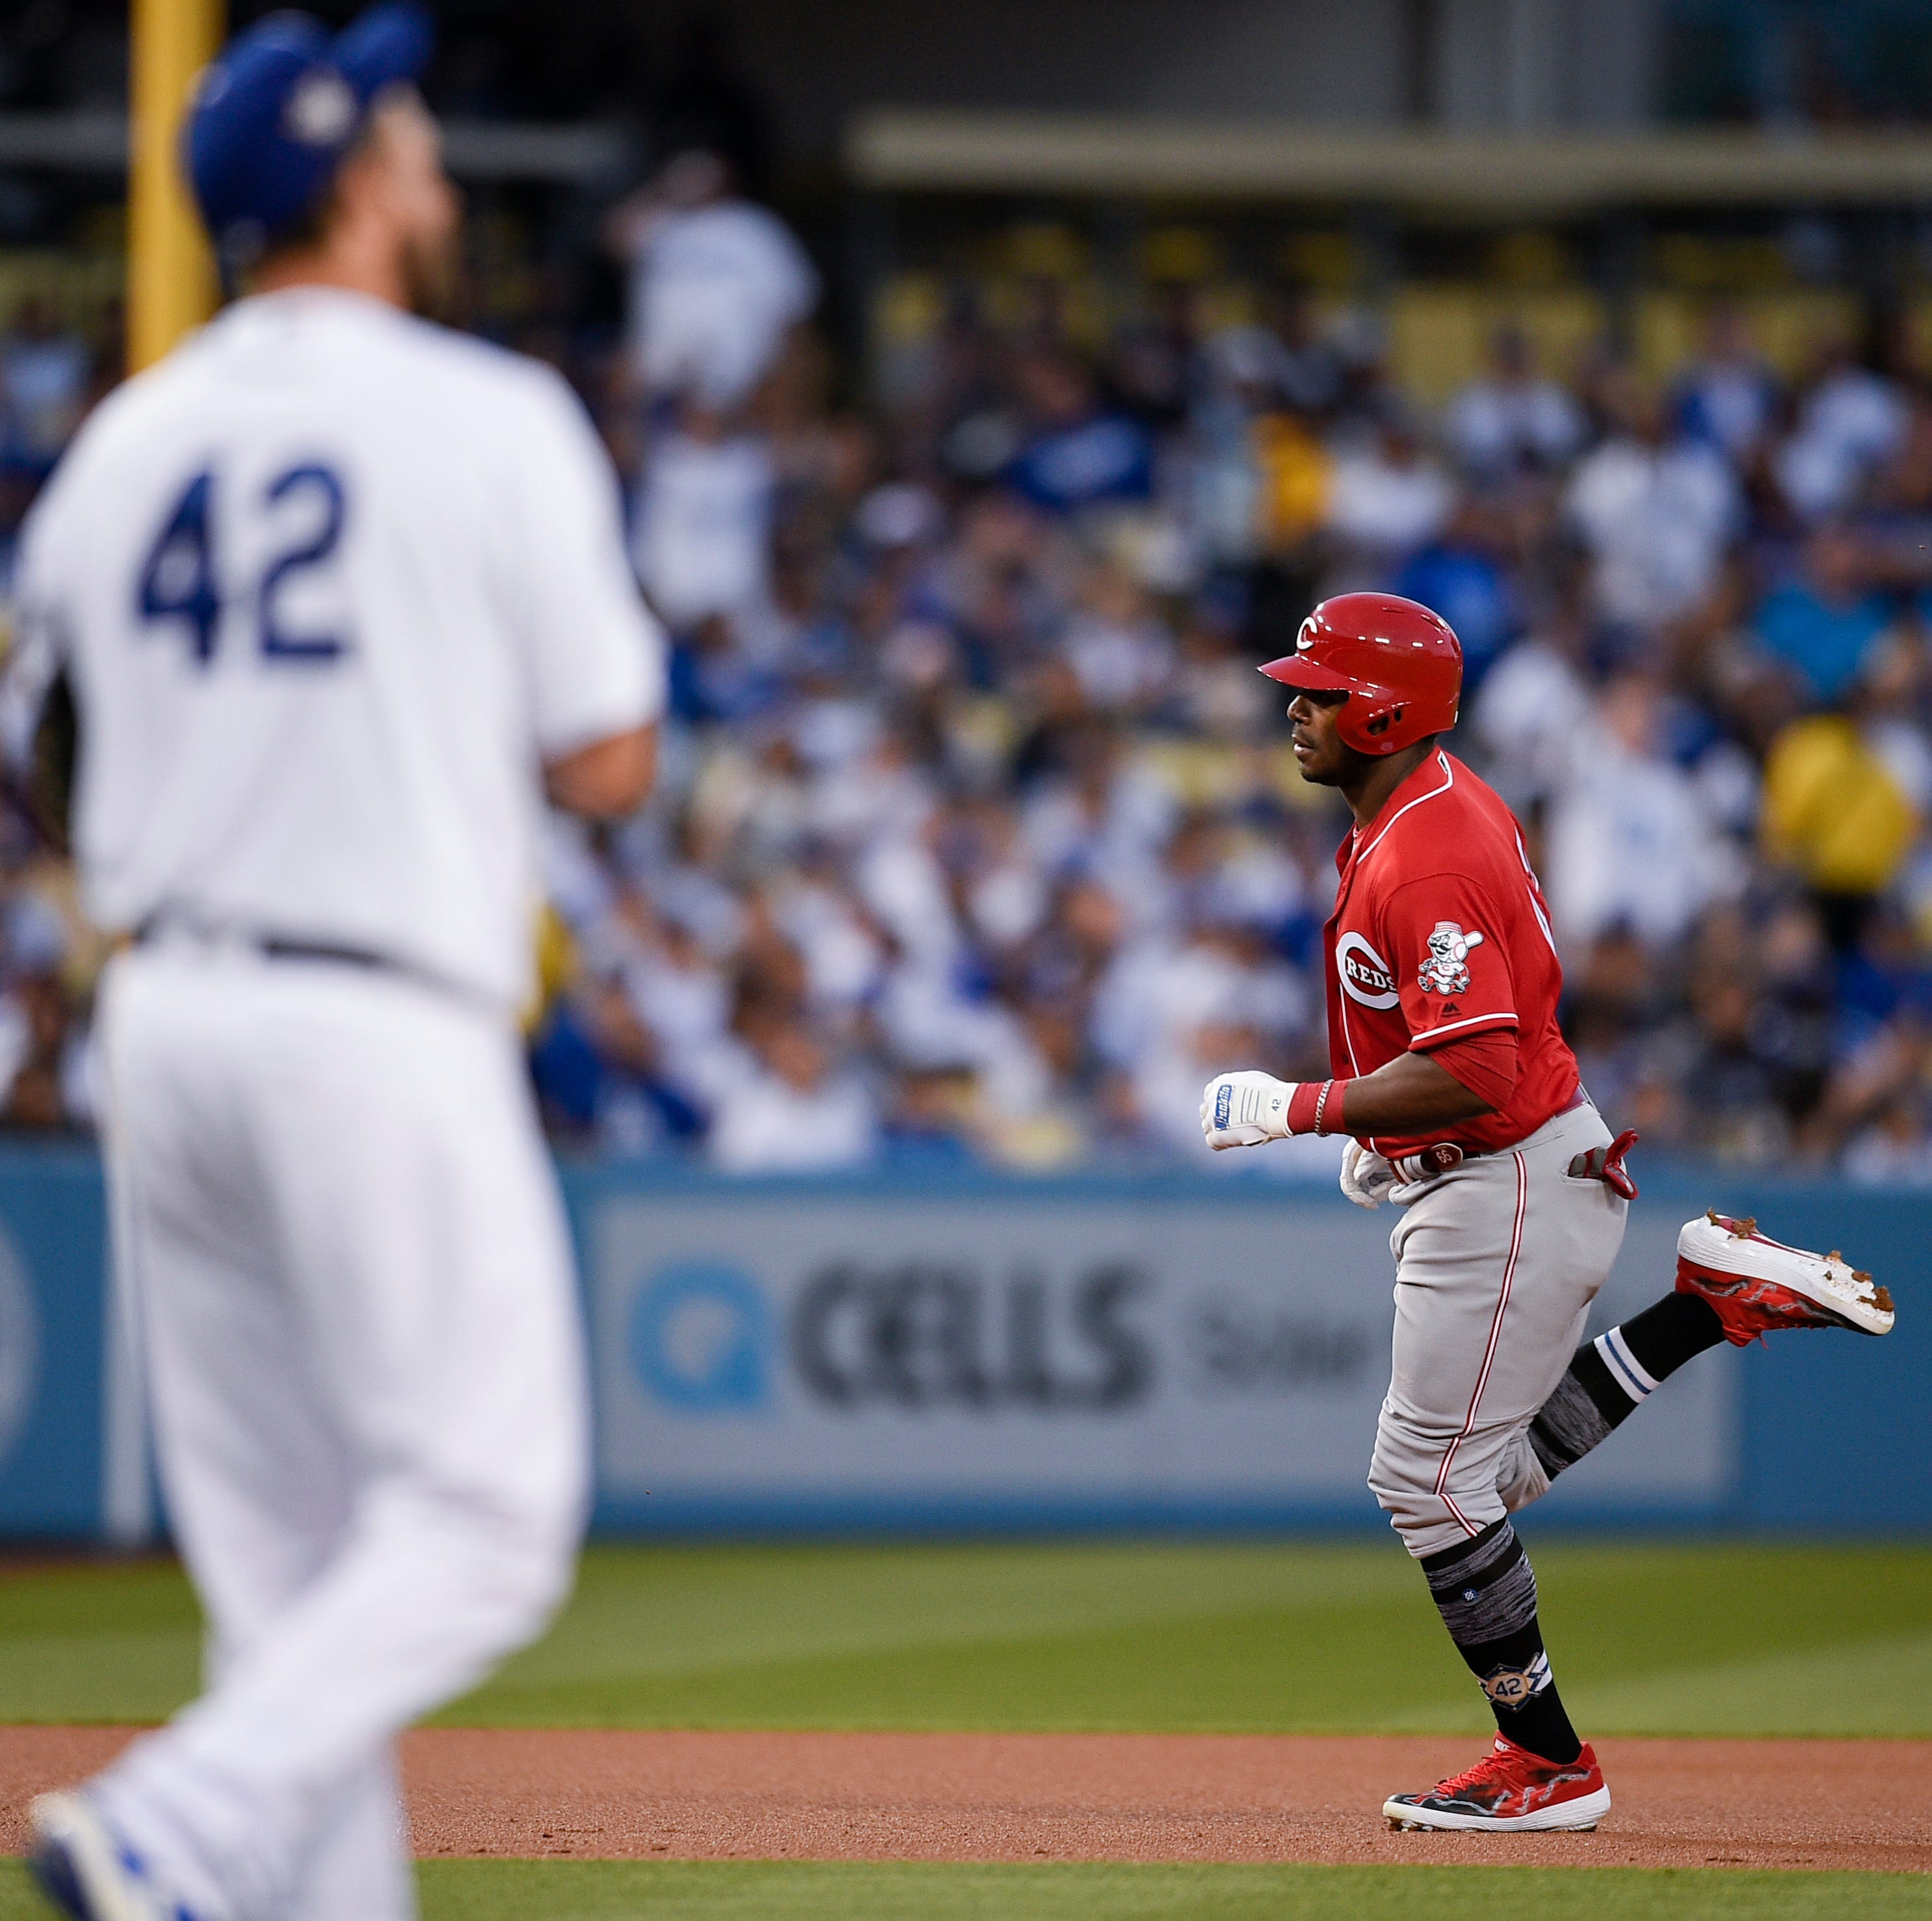 TMZ report: Here's why Reds slugger Yasiel Puig was late for Dodgers ring ceremony